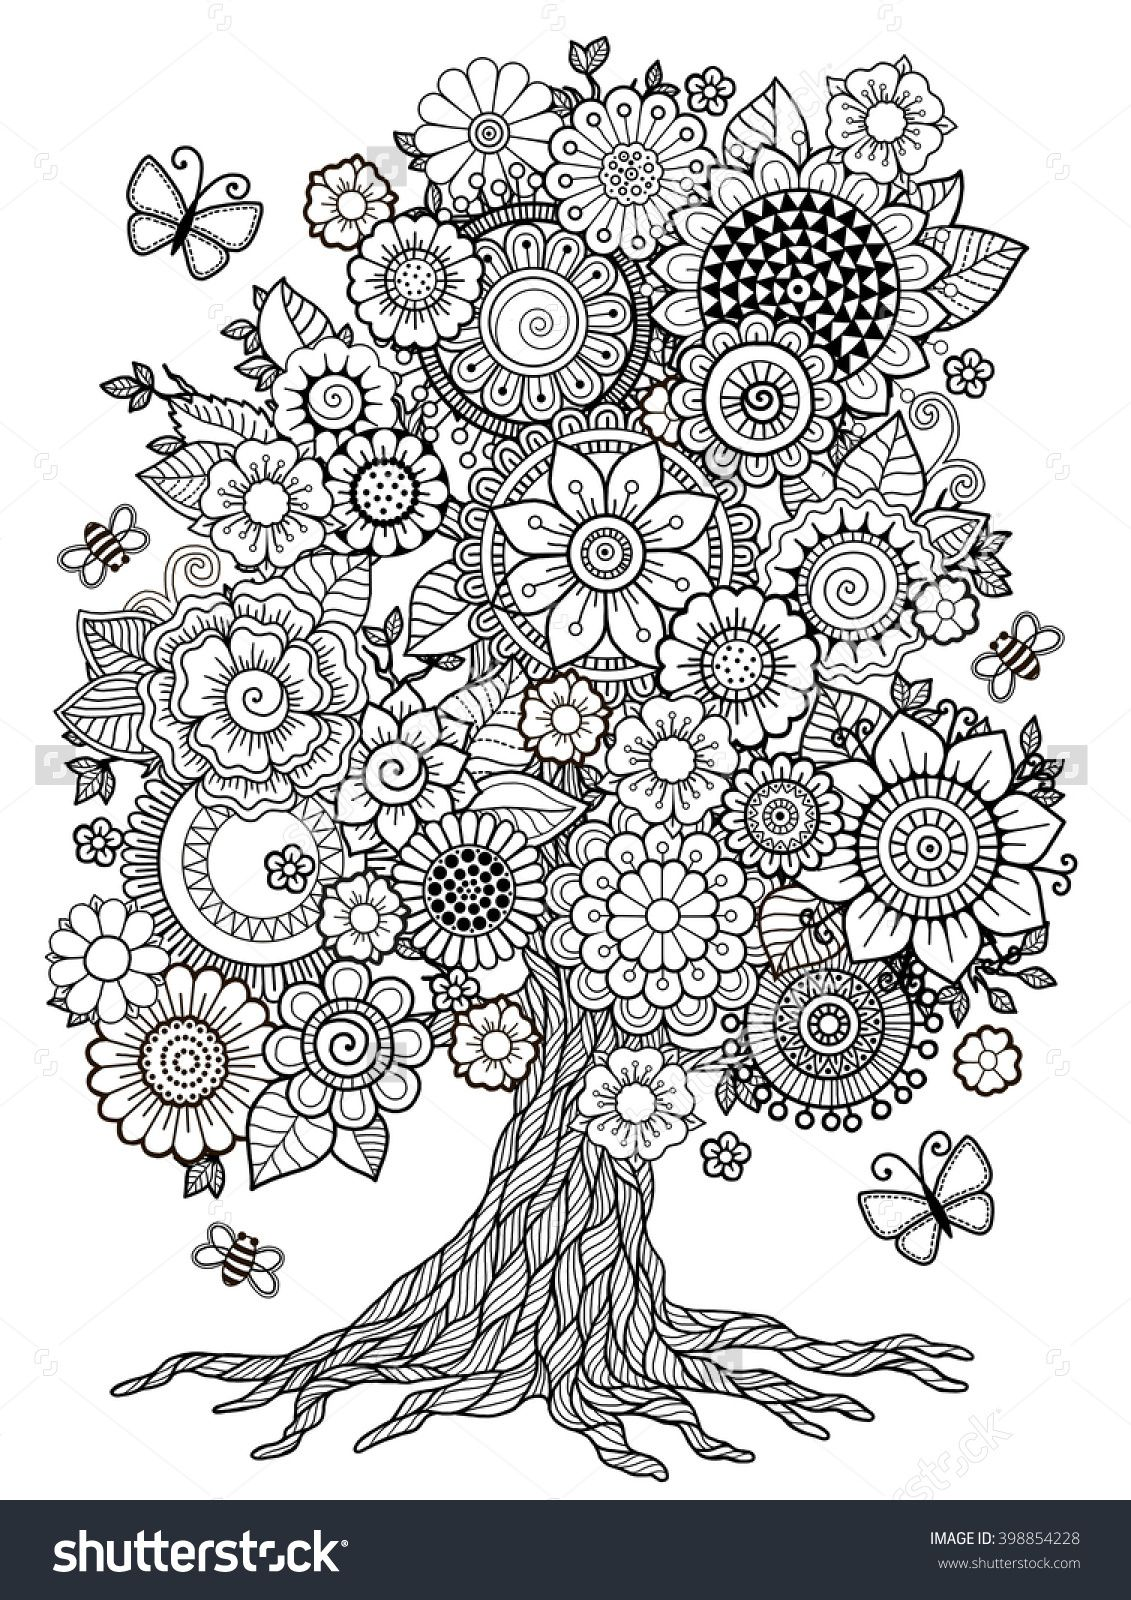 Pin On Trees Leaves Landscapes Colouring Coloring Pages